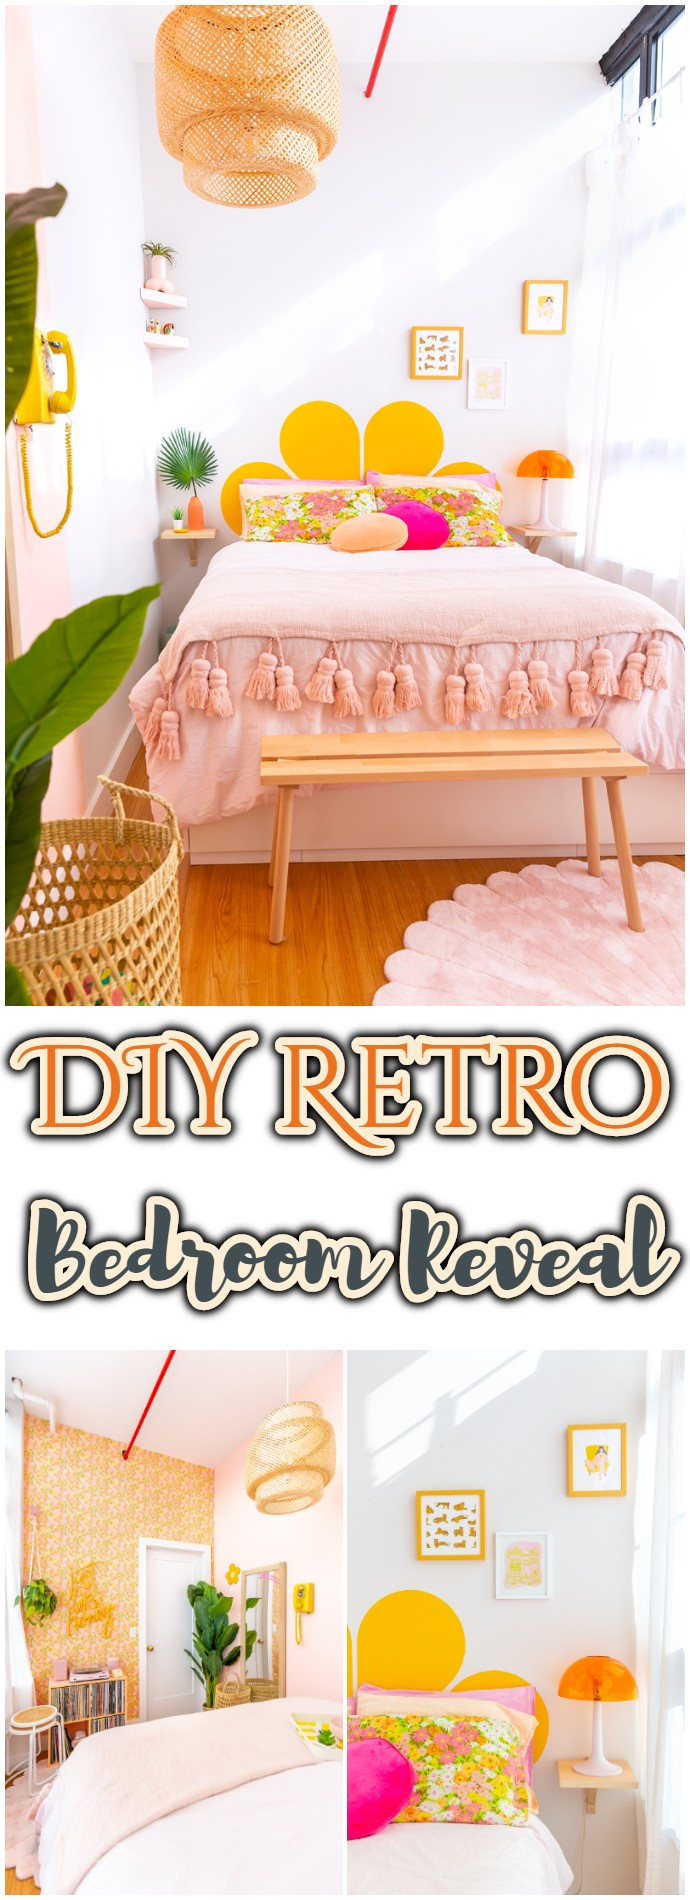 DIY Retro Bedroom Reveal